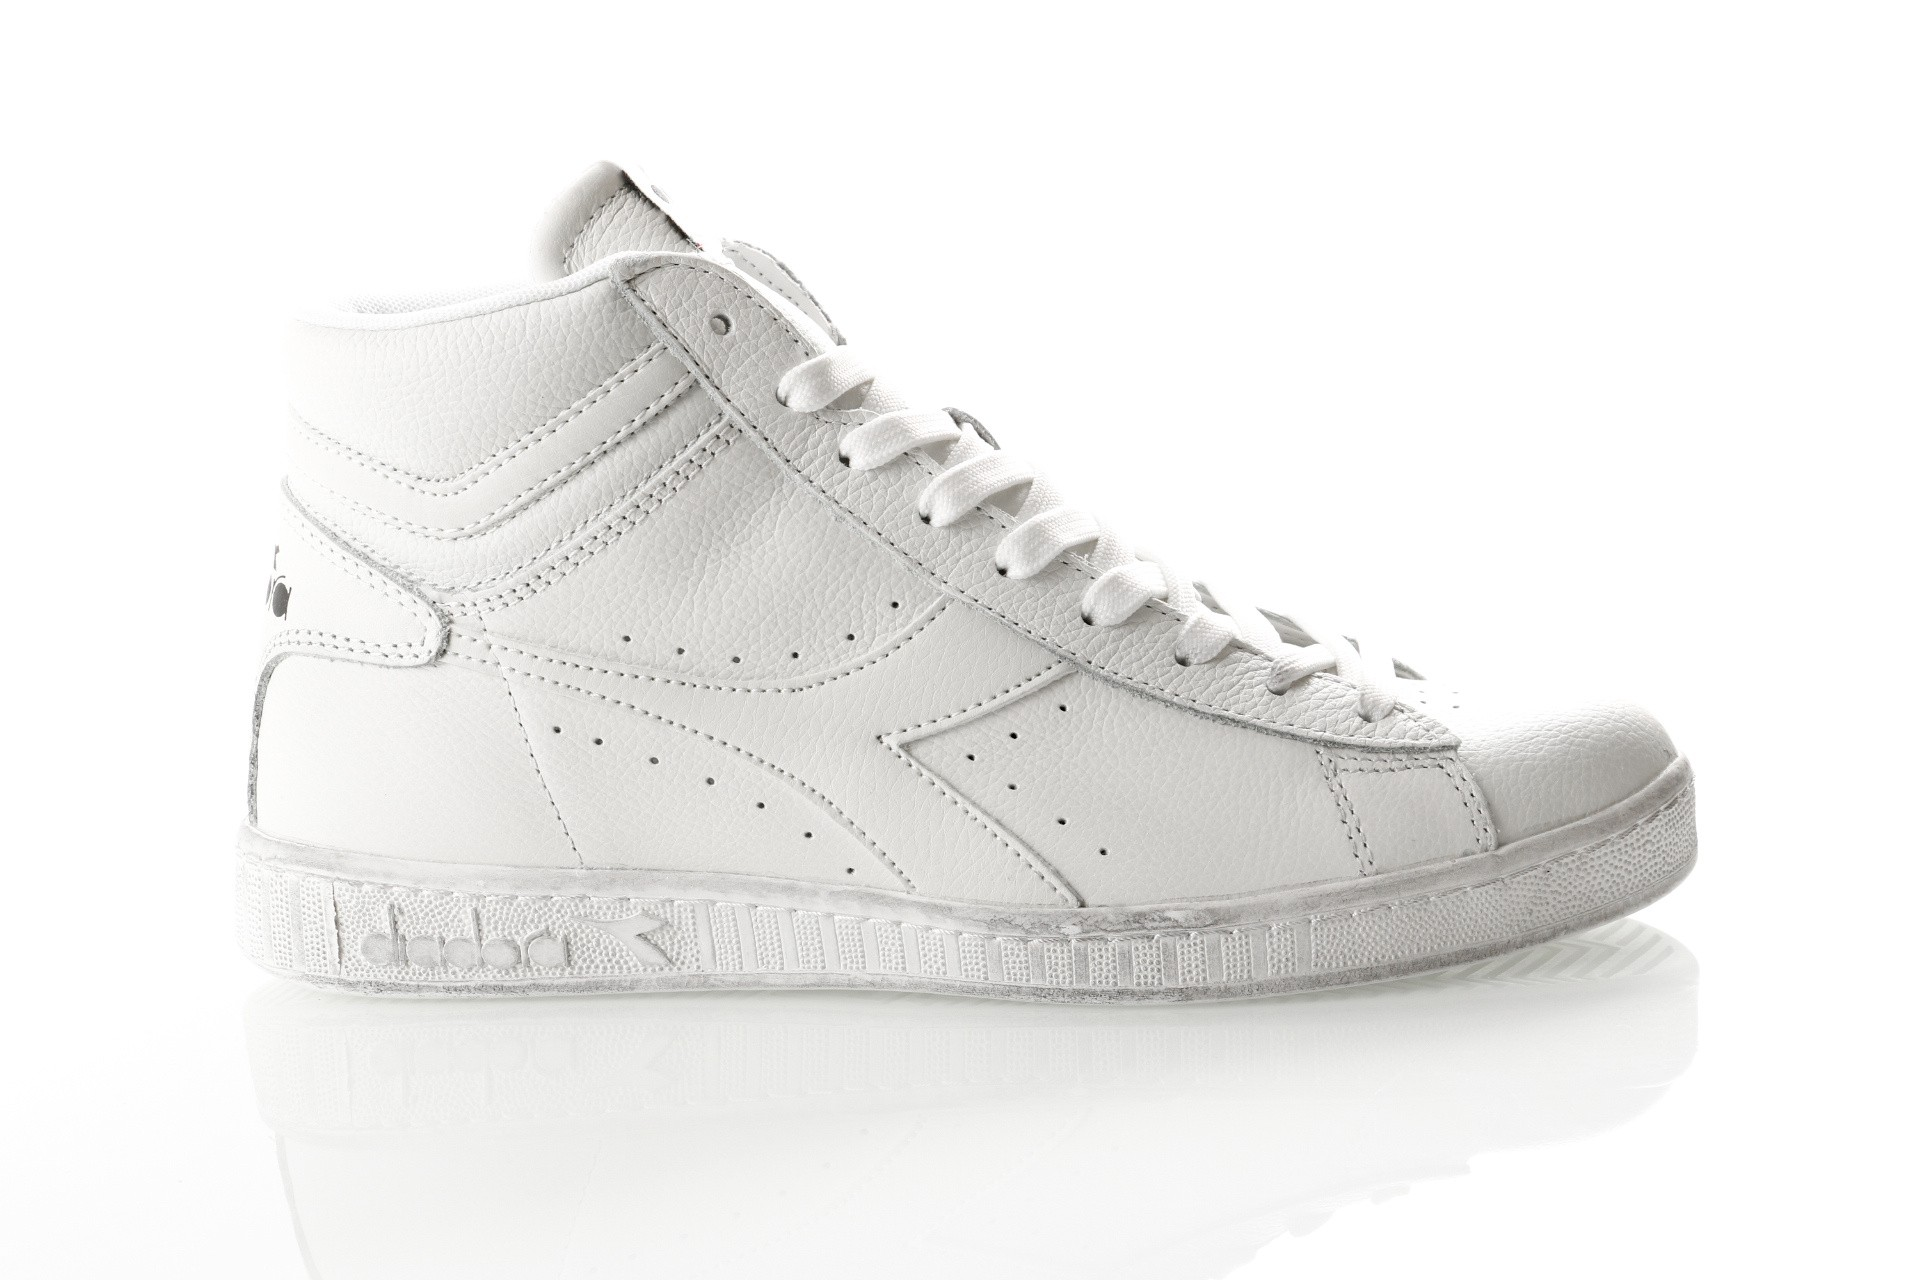 Afbeelding van Diadora Game L High Waxed 501159657 Sneakers White/White/White